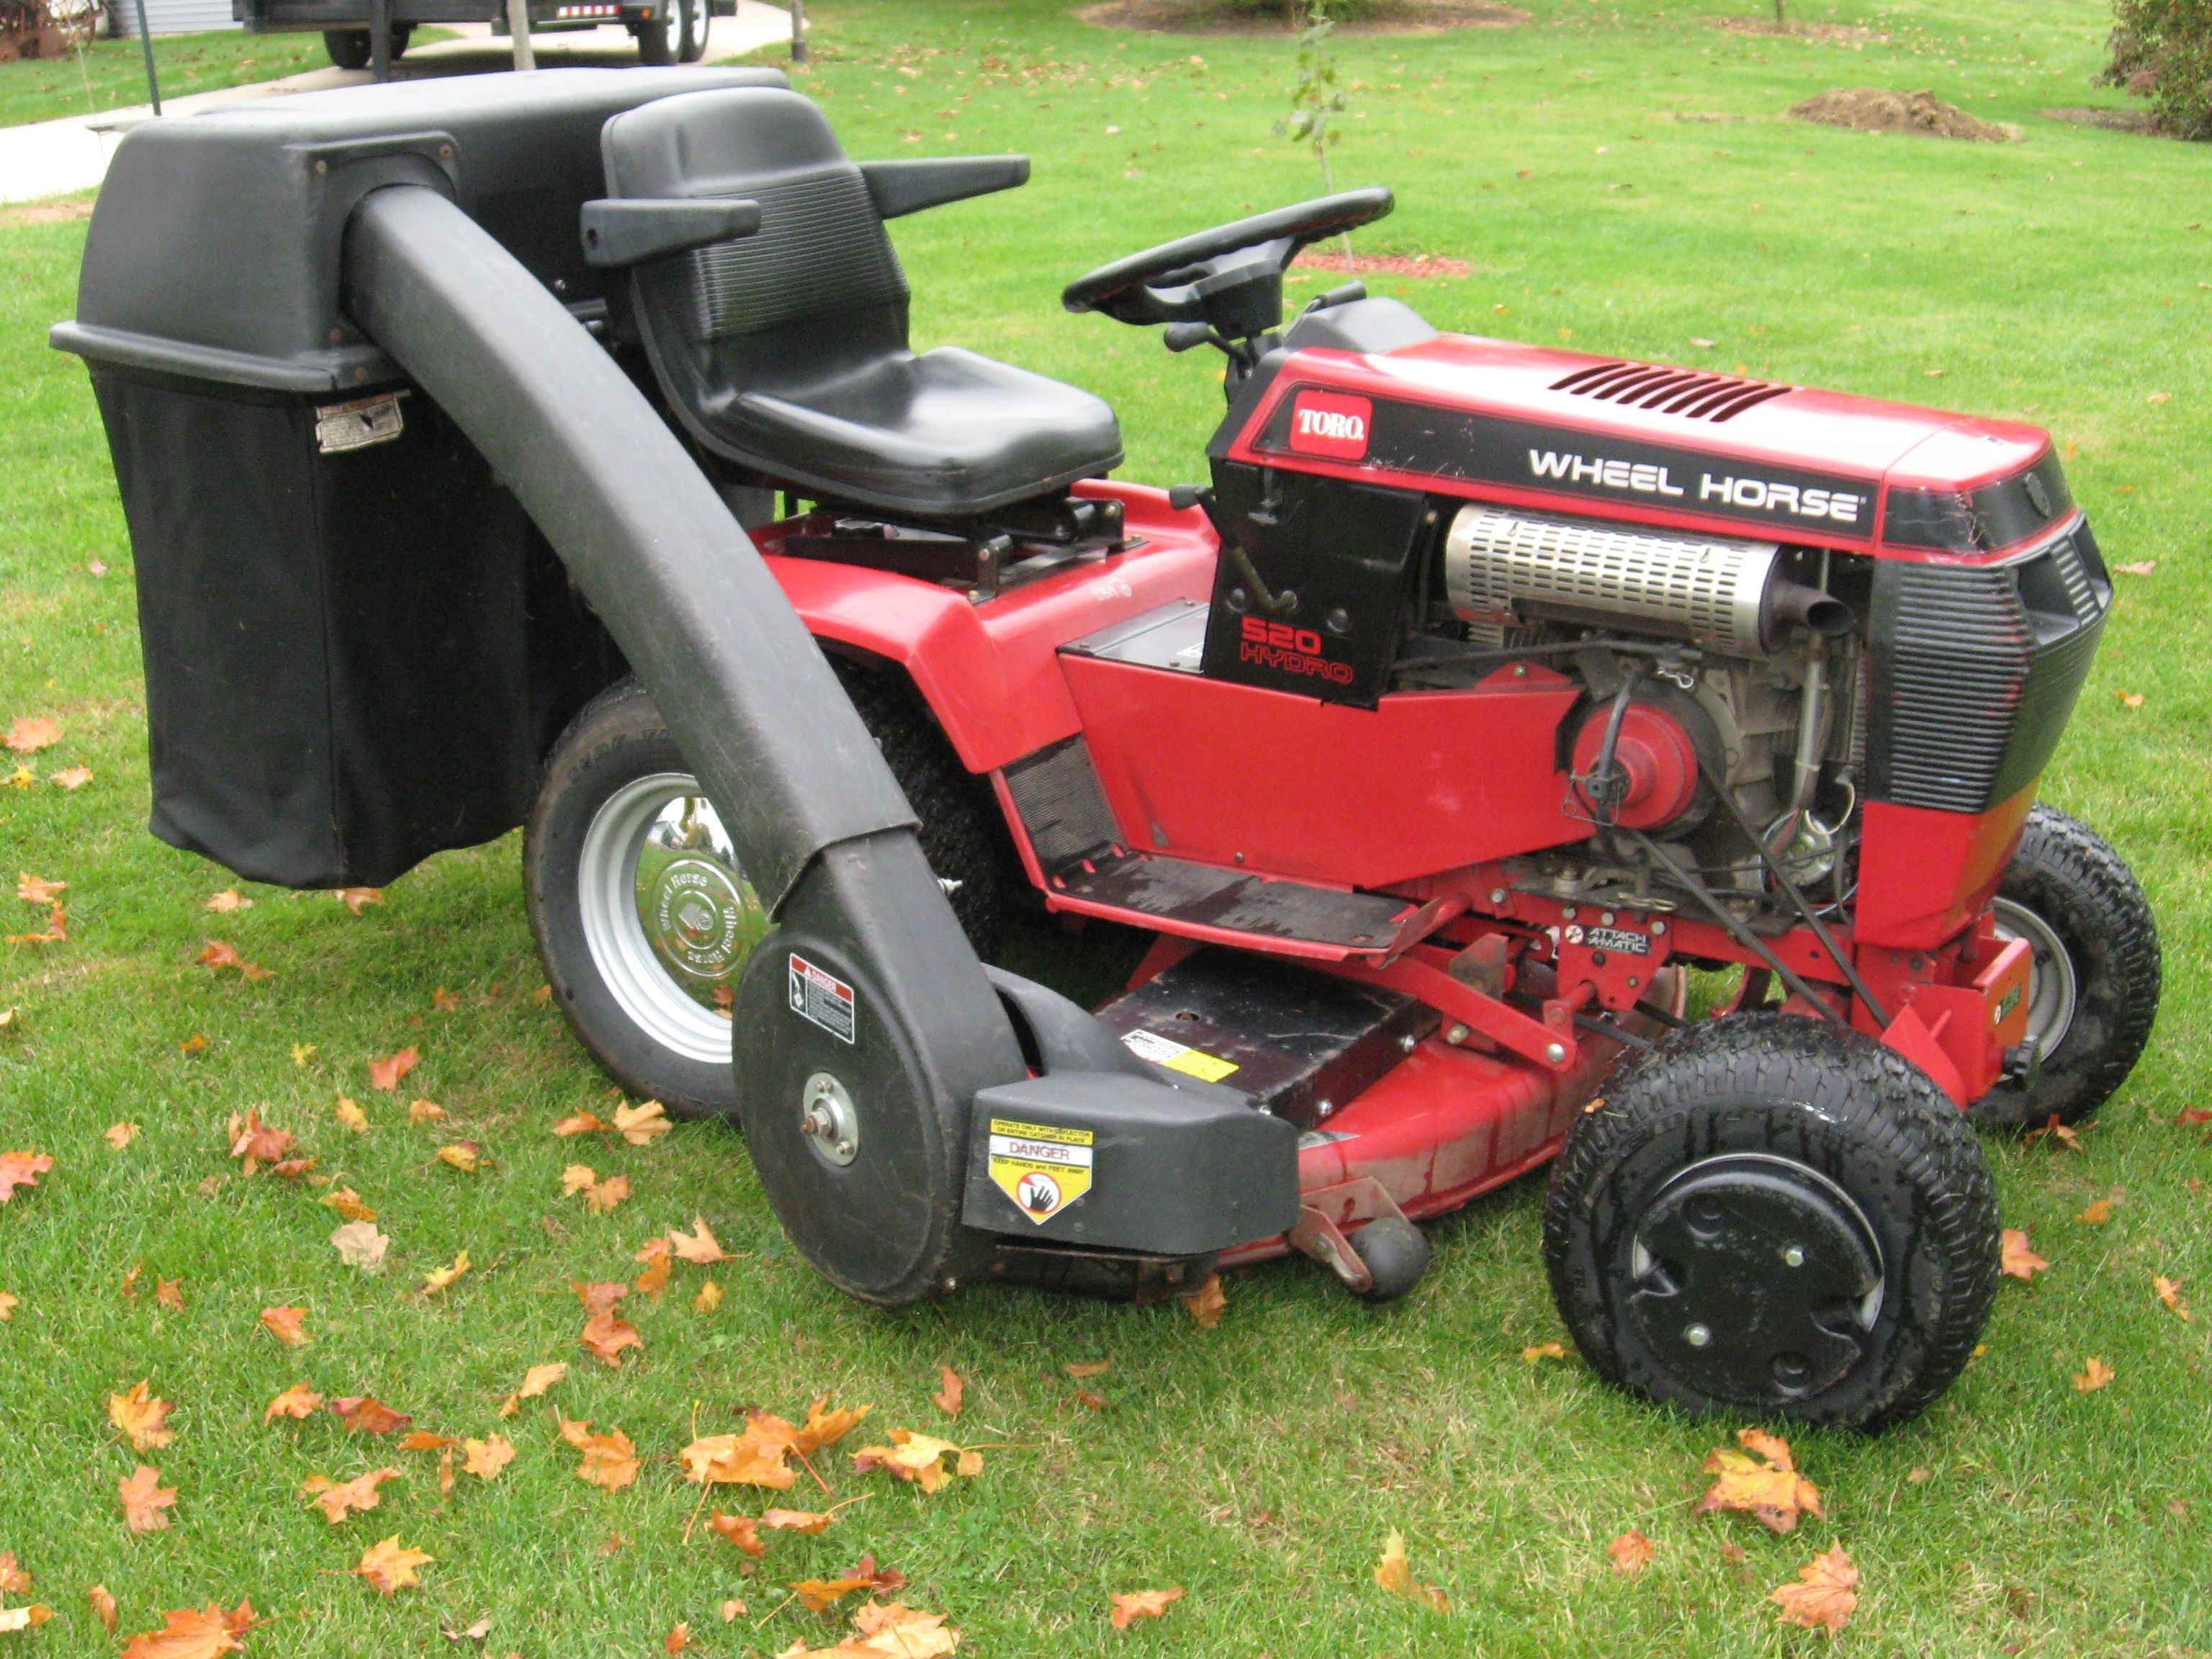 Wheel Horse 520 With Bagger Great Outfit Lawn Tractor Garden Tractor Lawn Mower